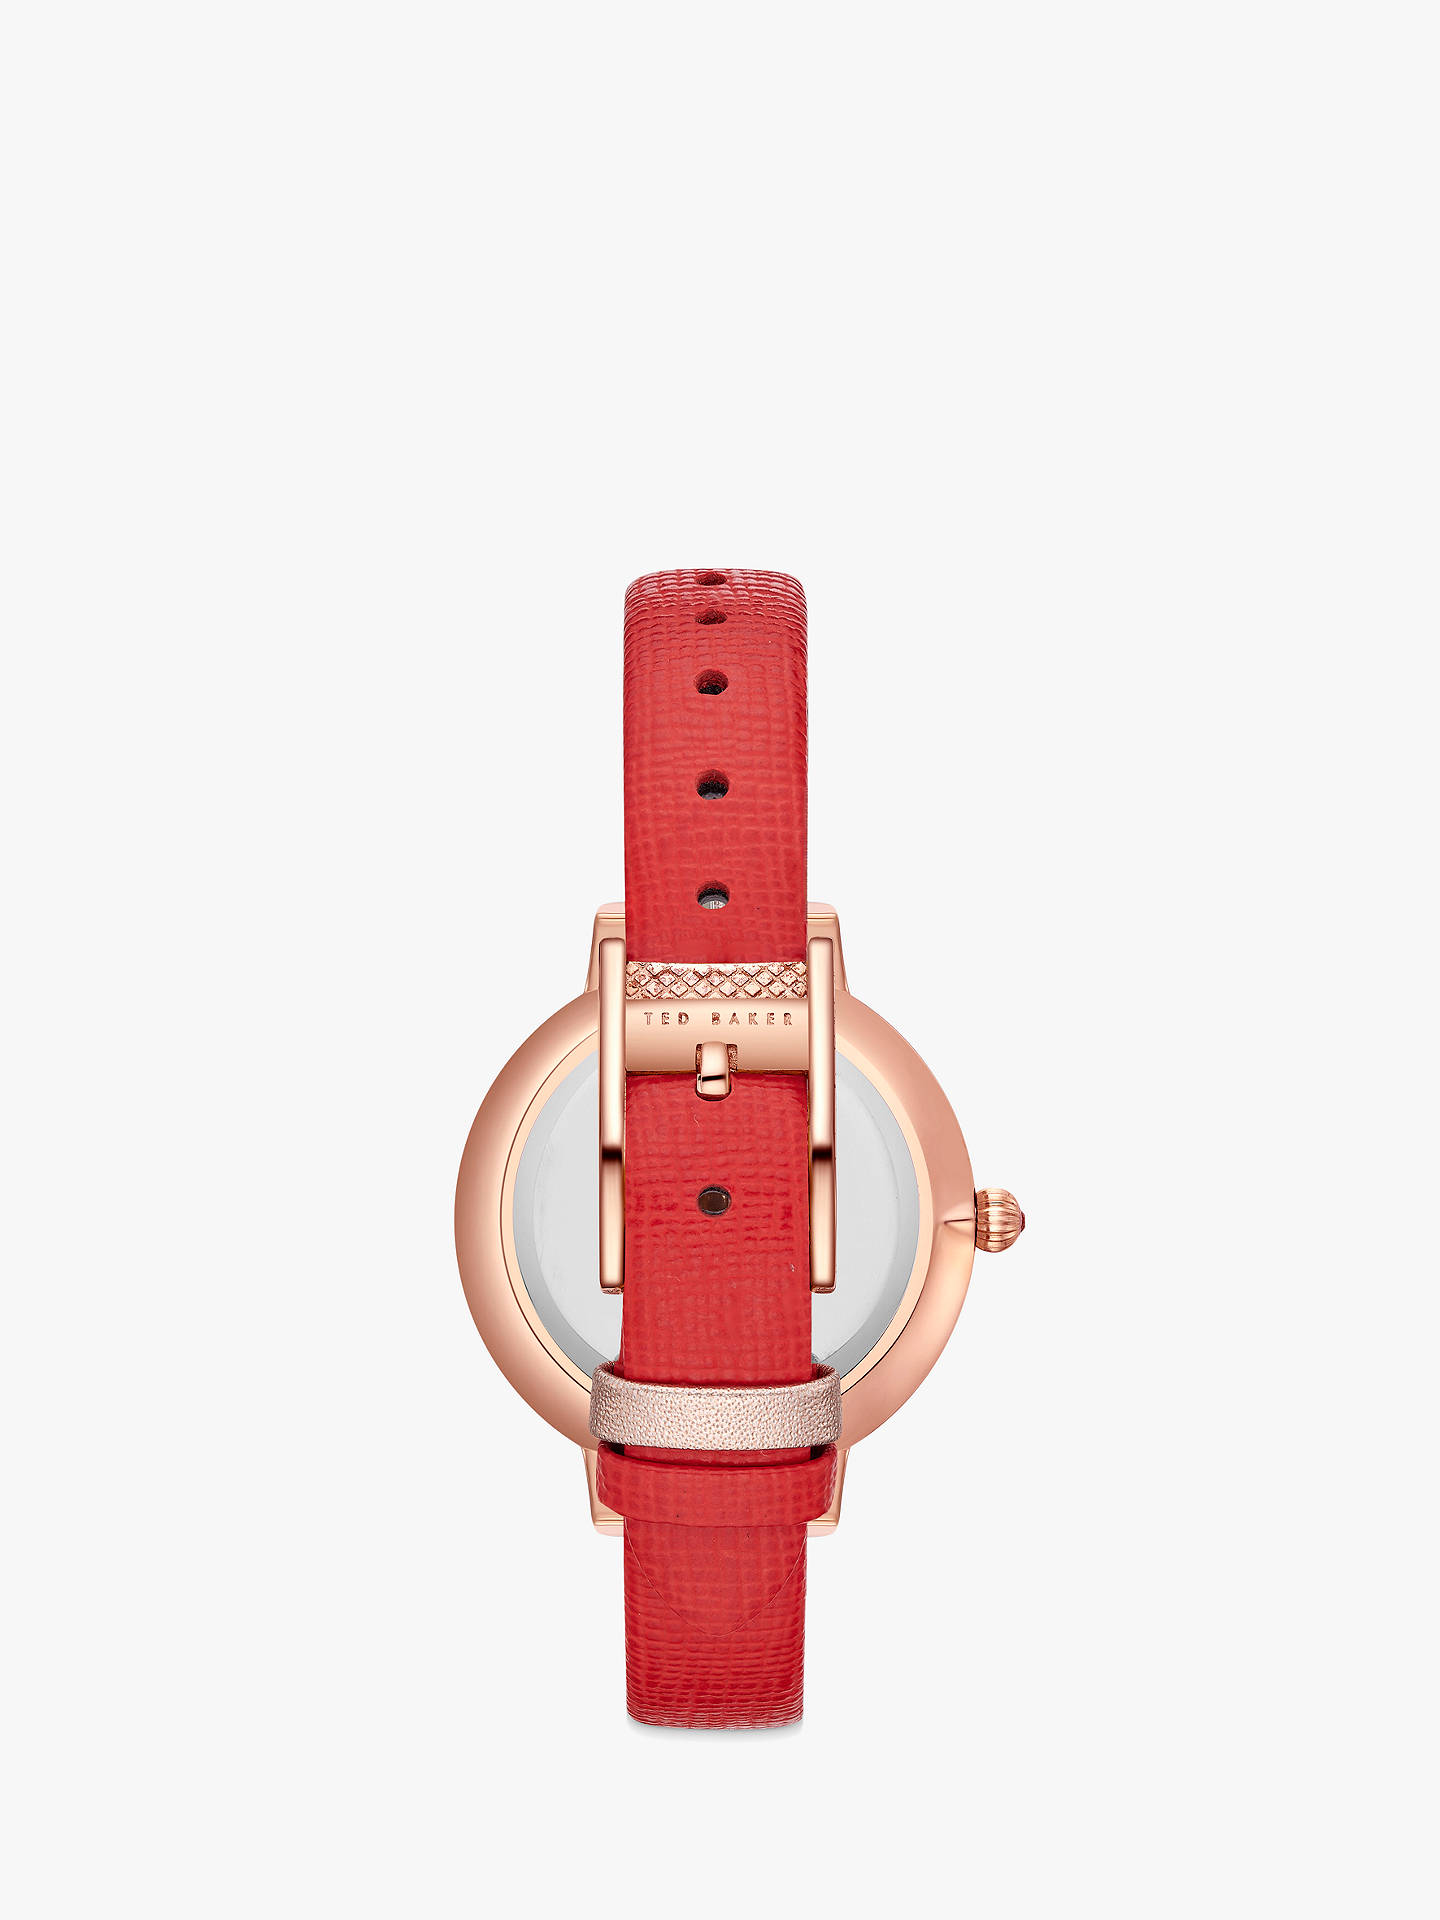 BuyTed Baker Women's Kate Leather Strap Watch, Red/Multi TE50005007 Online at johnlewis.com